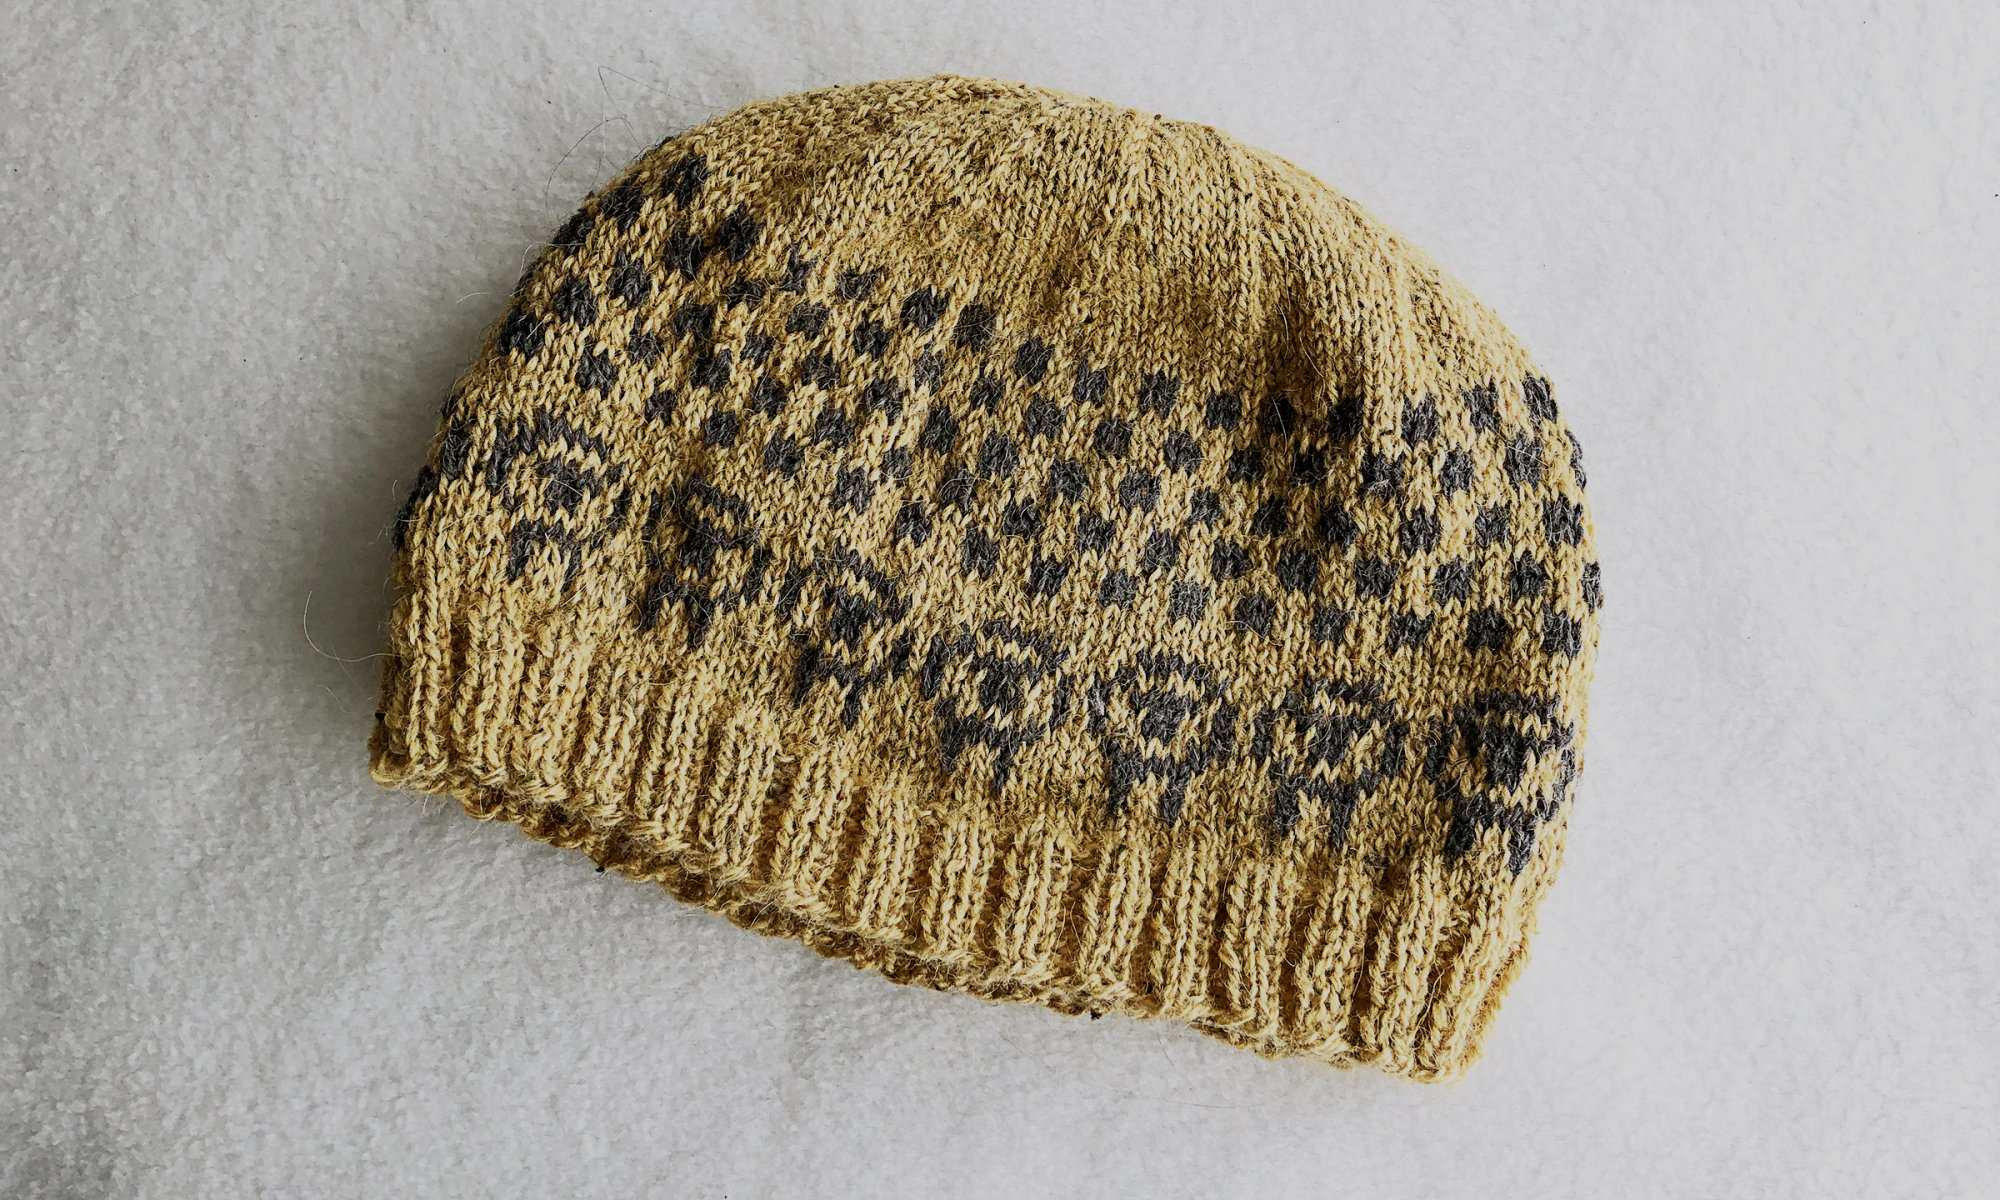 Simple Sheep Hat Knitting Pattern by Edie Eckman